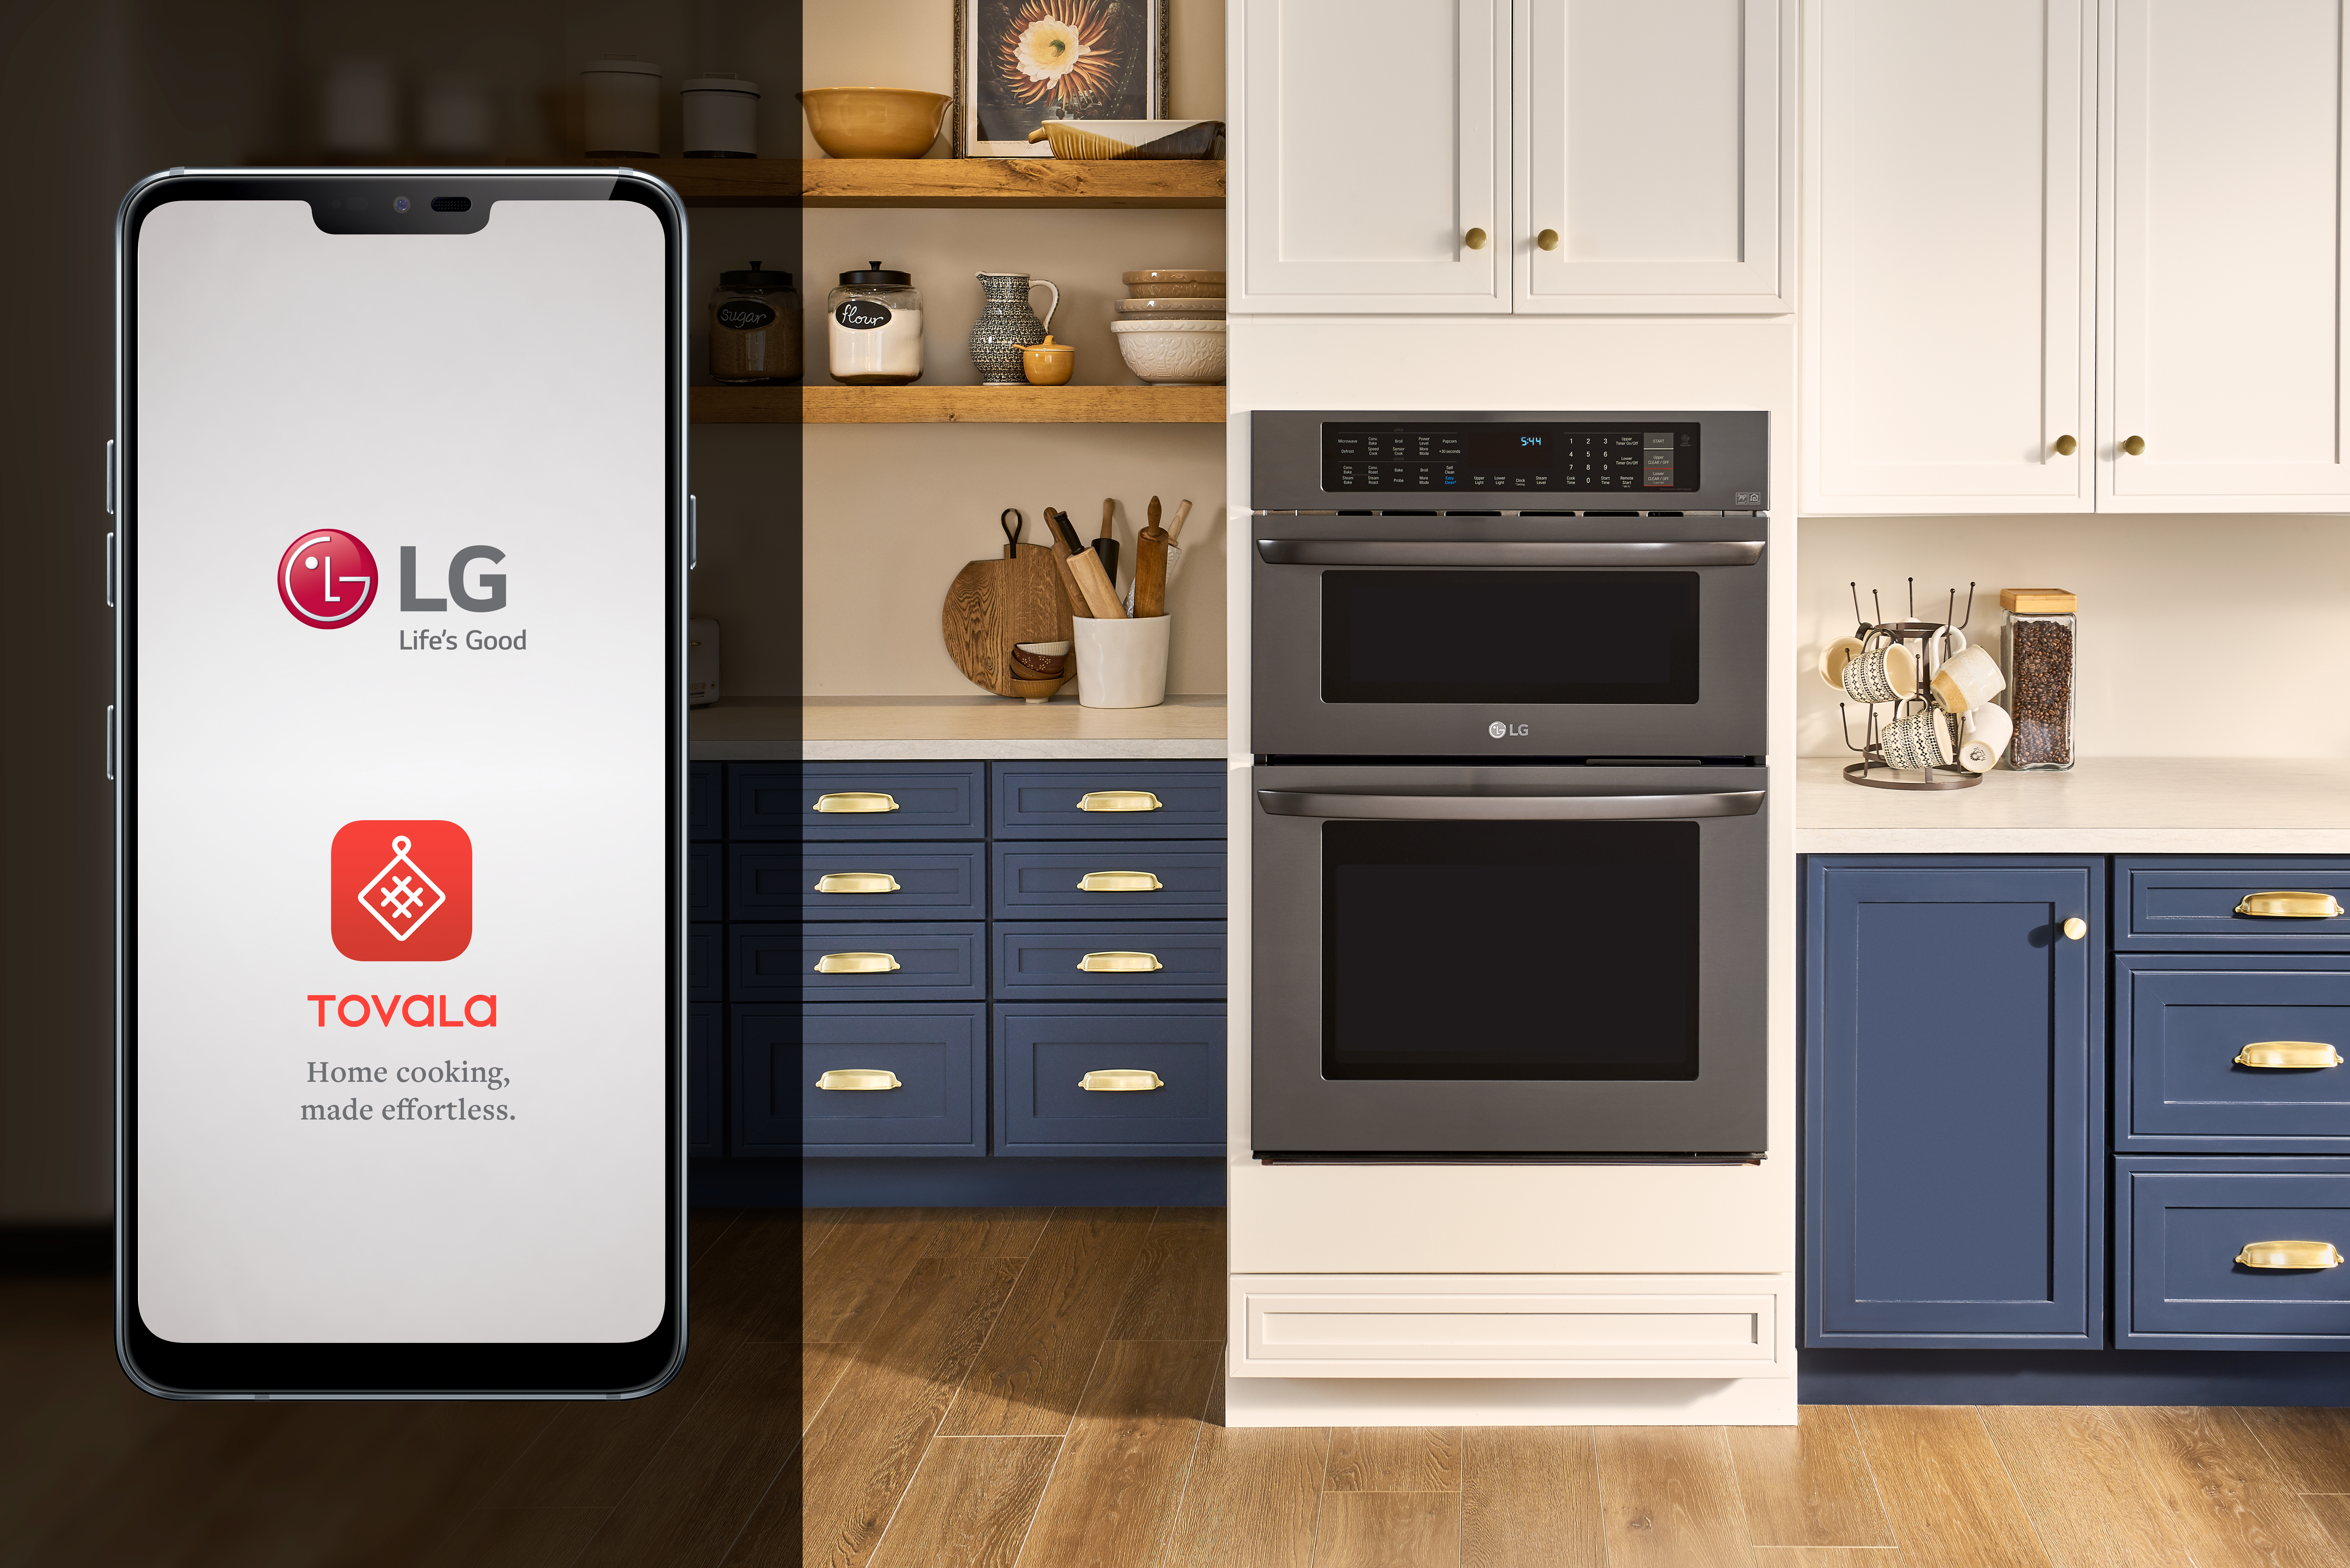 lg adds tovala partnership to smart kitchen offerings residential products online